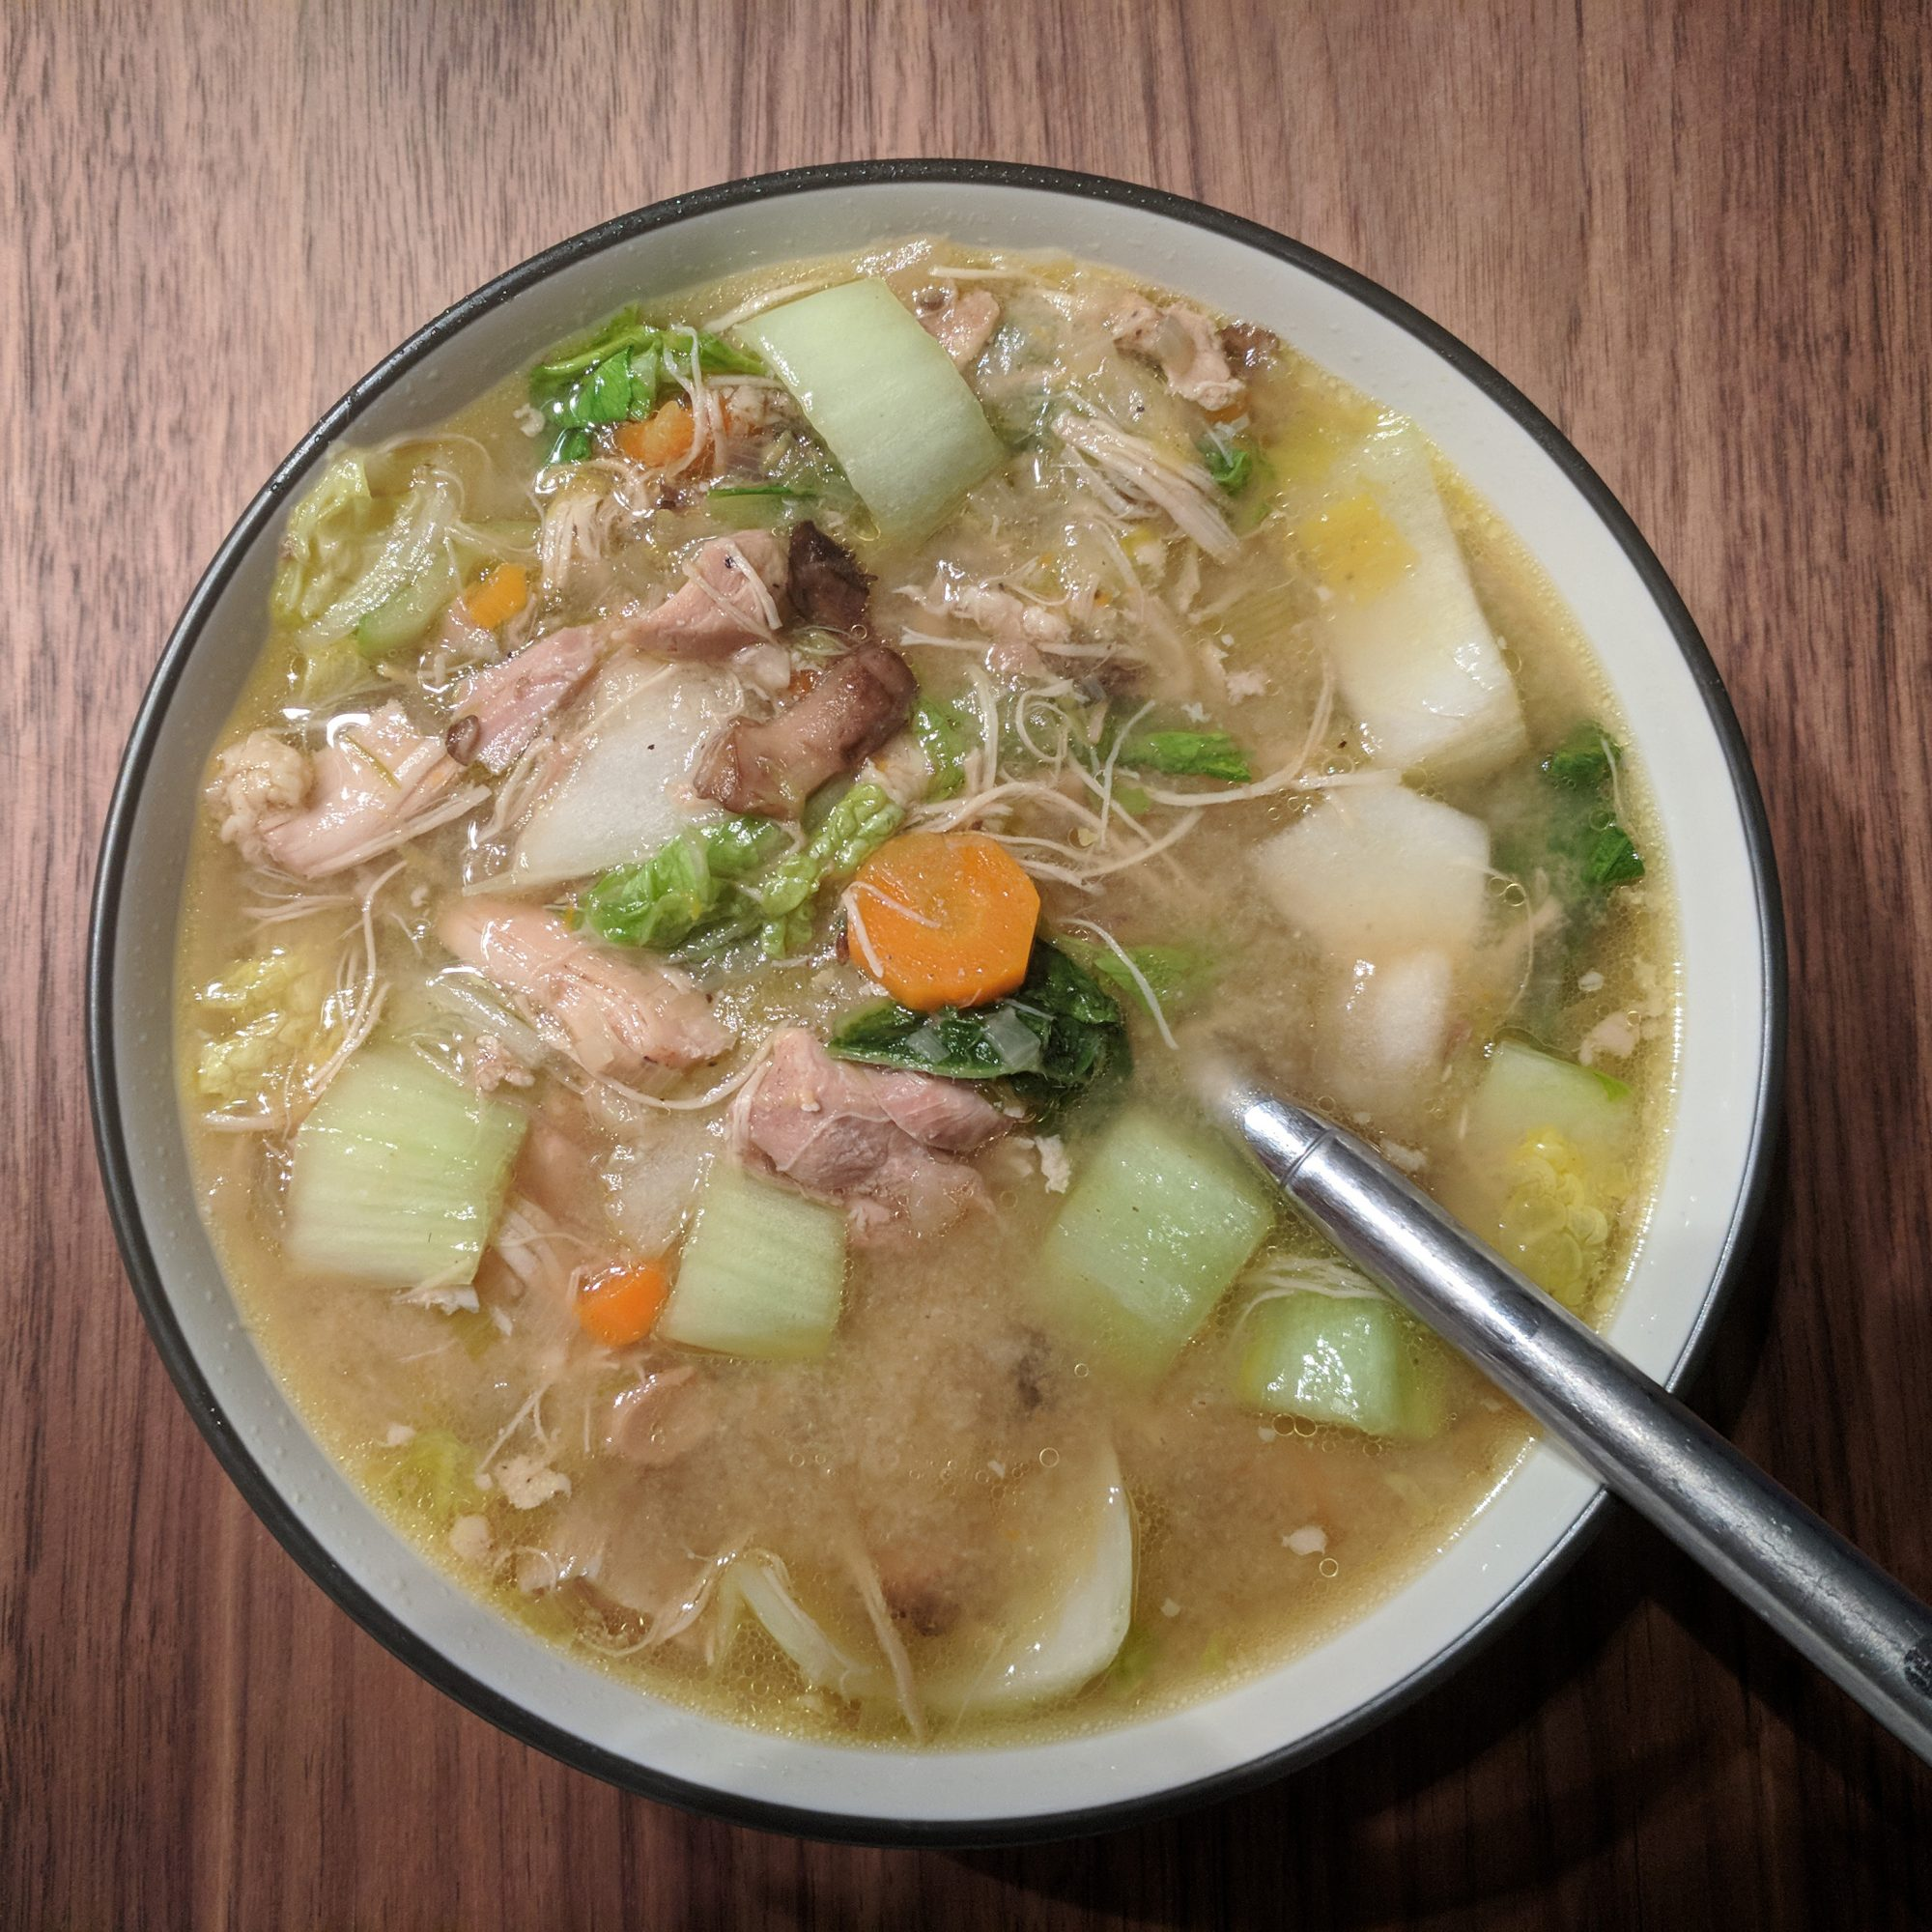 Chicken and Veggie Miso Soup in a bowl